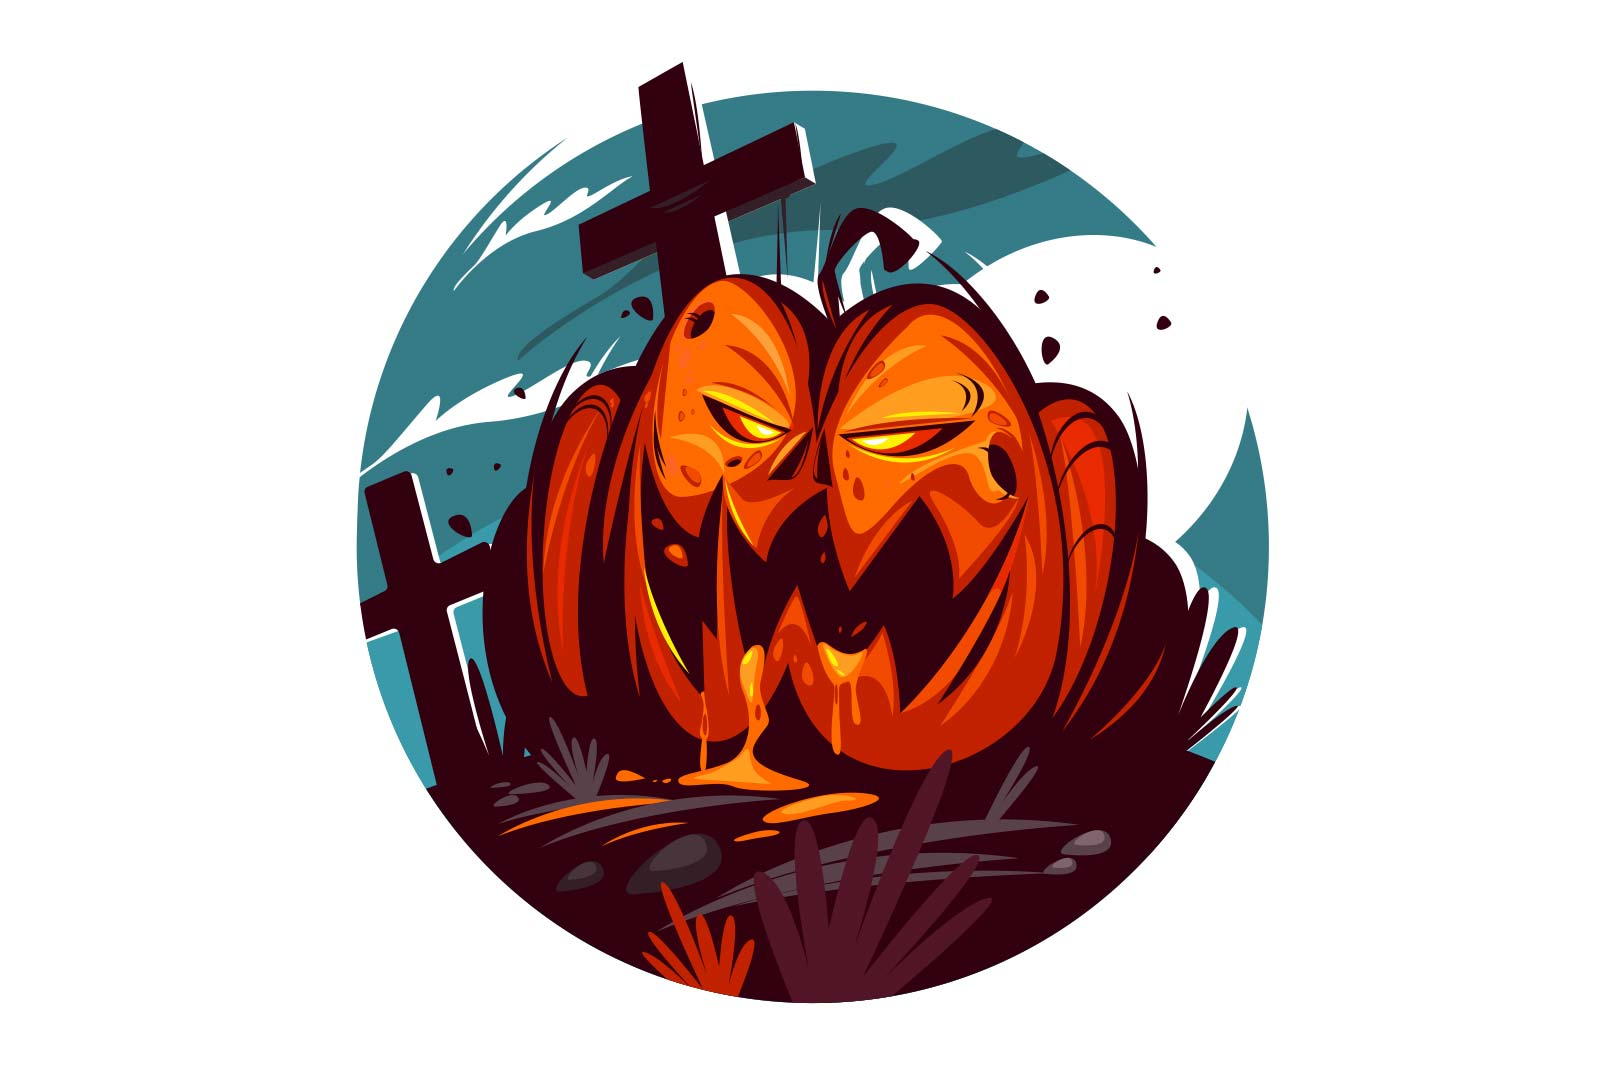 Bright evil pumpkin vector illustration. Scary orange autumn vegetable flat style. Crosses on horror cemetery. Festive party. Happy halloween decoration concept. Isolated on white background